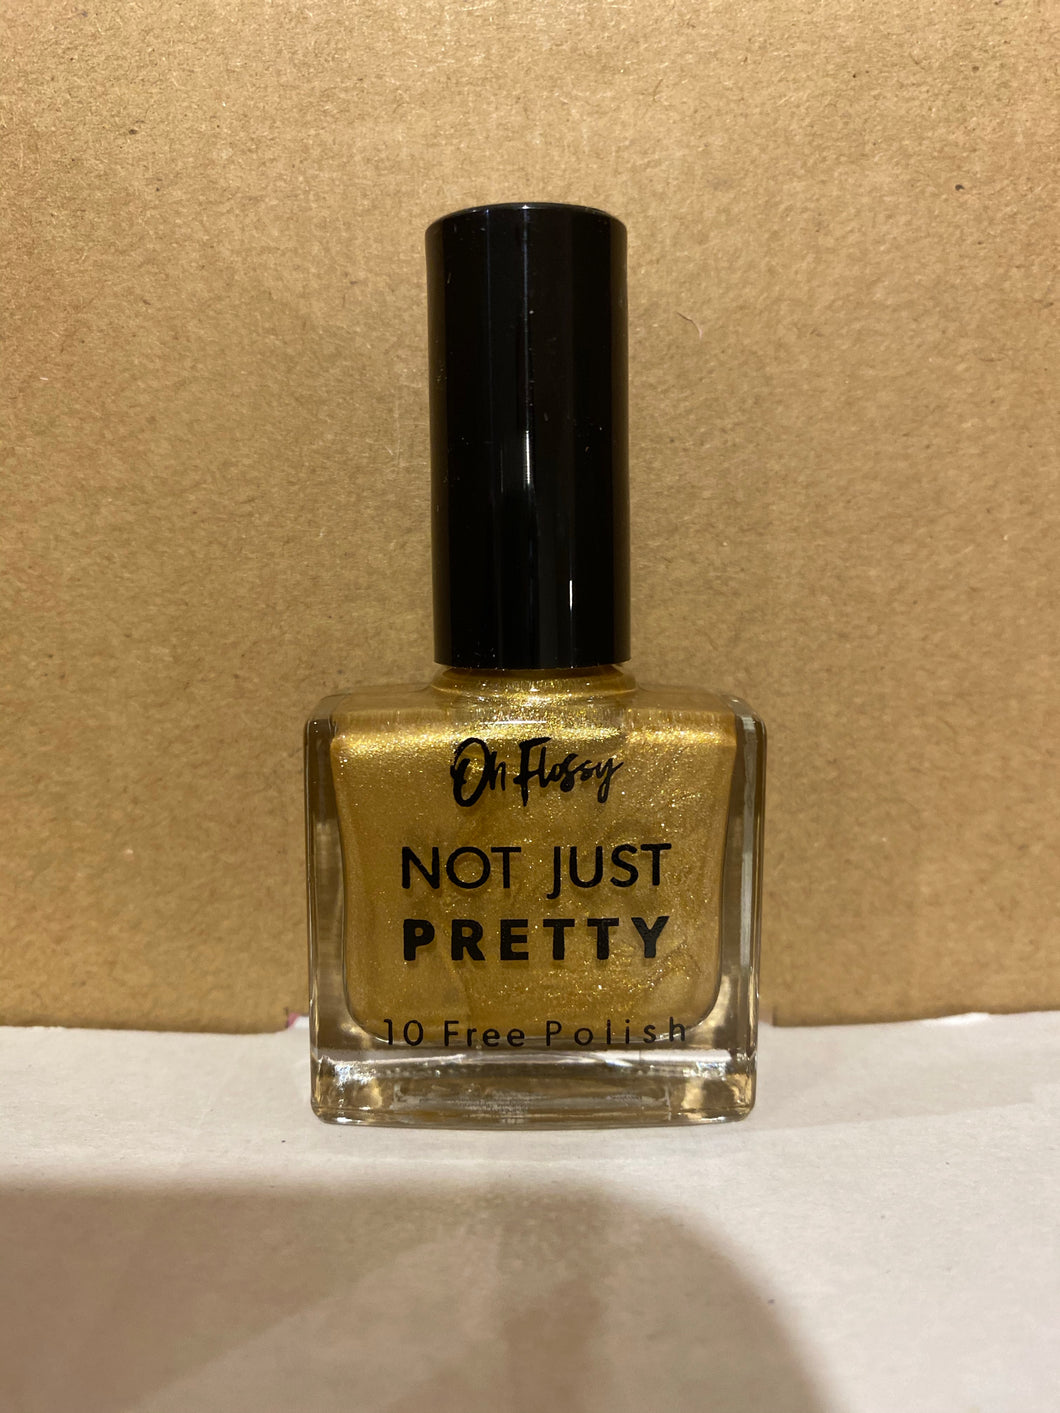 Oh Flossy - Rapid Dry Nail Polish - Trustworthy